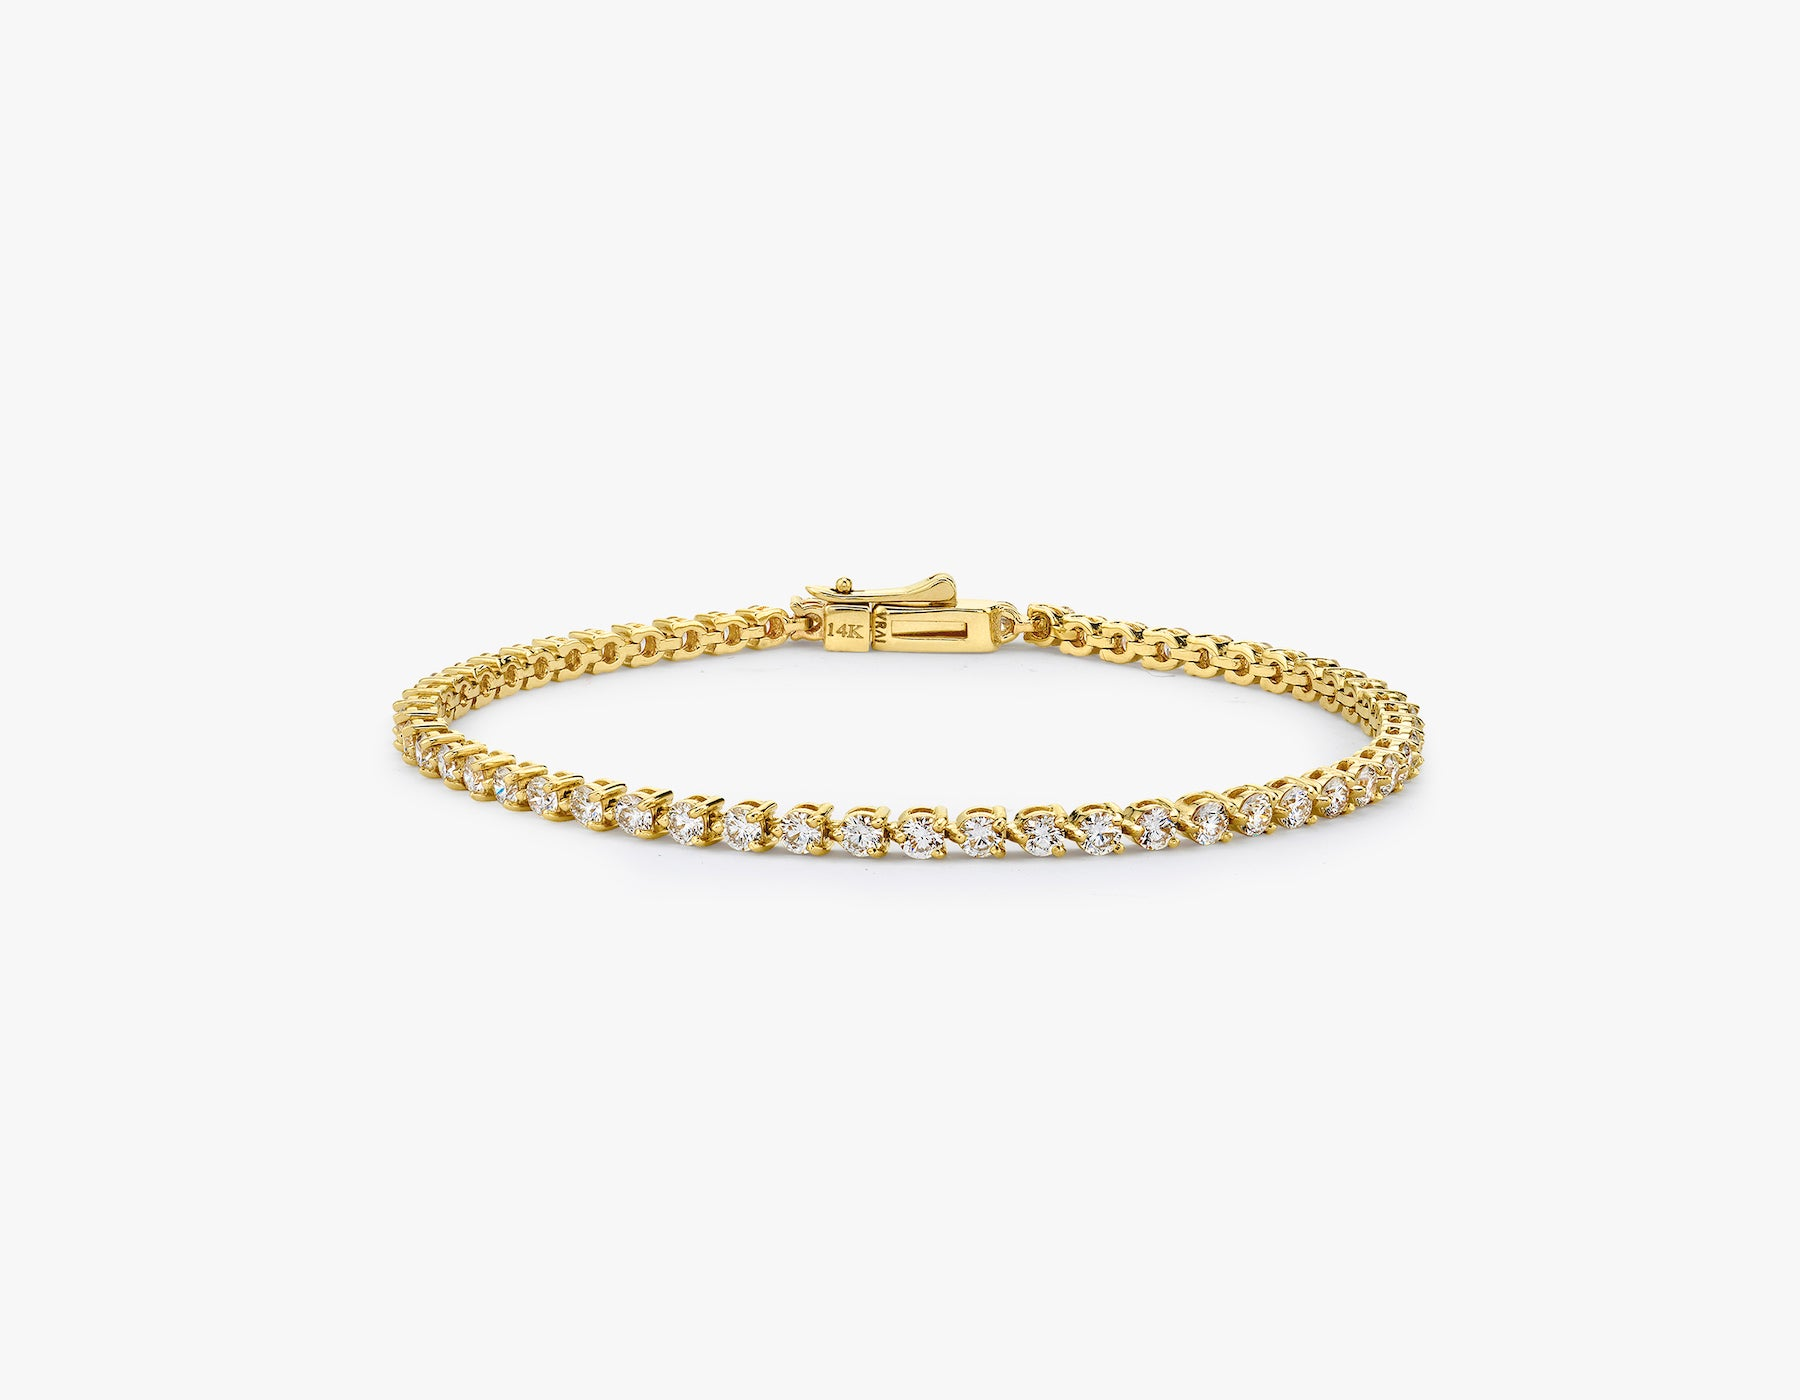 Vrai simple elegant Round Brilliant Diamond Tennis Bracelet with .05ct stone, 14K Yellow Gold